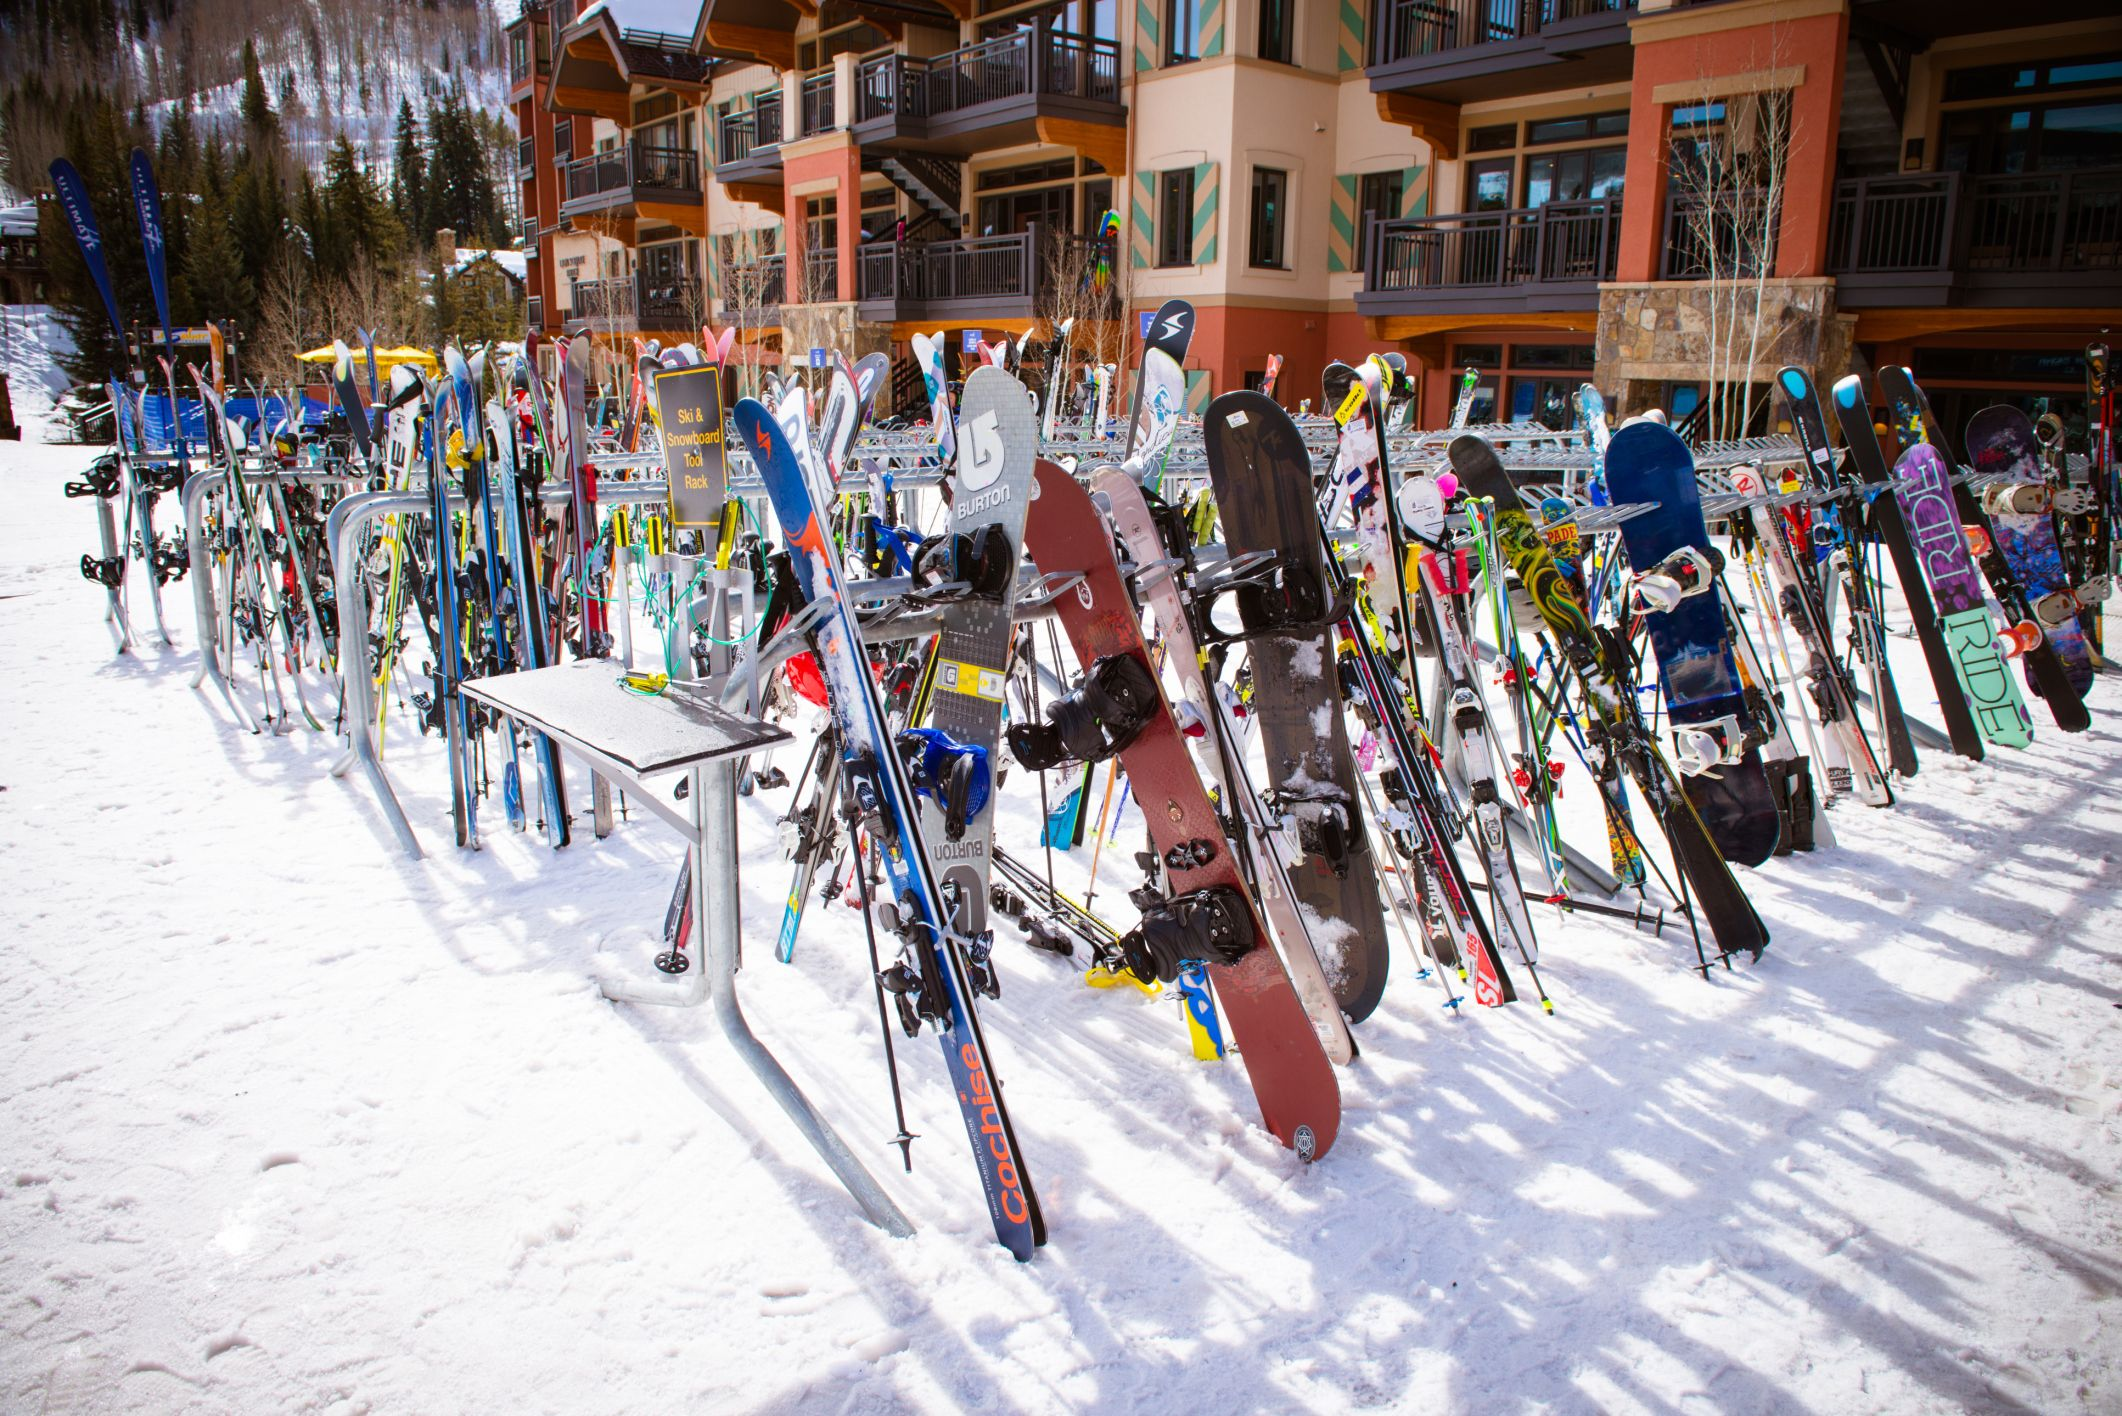 Vail, USA - February 12, 2015: Skiers and lift during ski season in Vail, Colorado